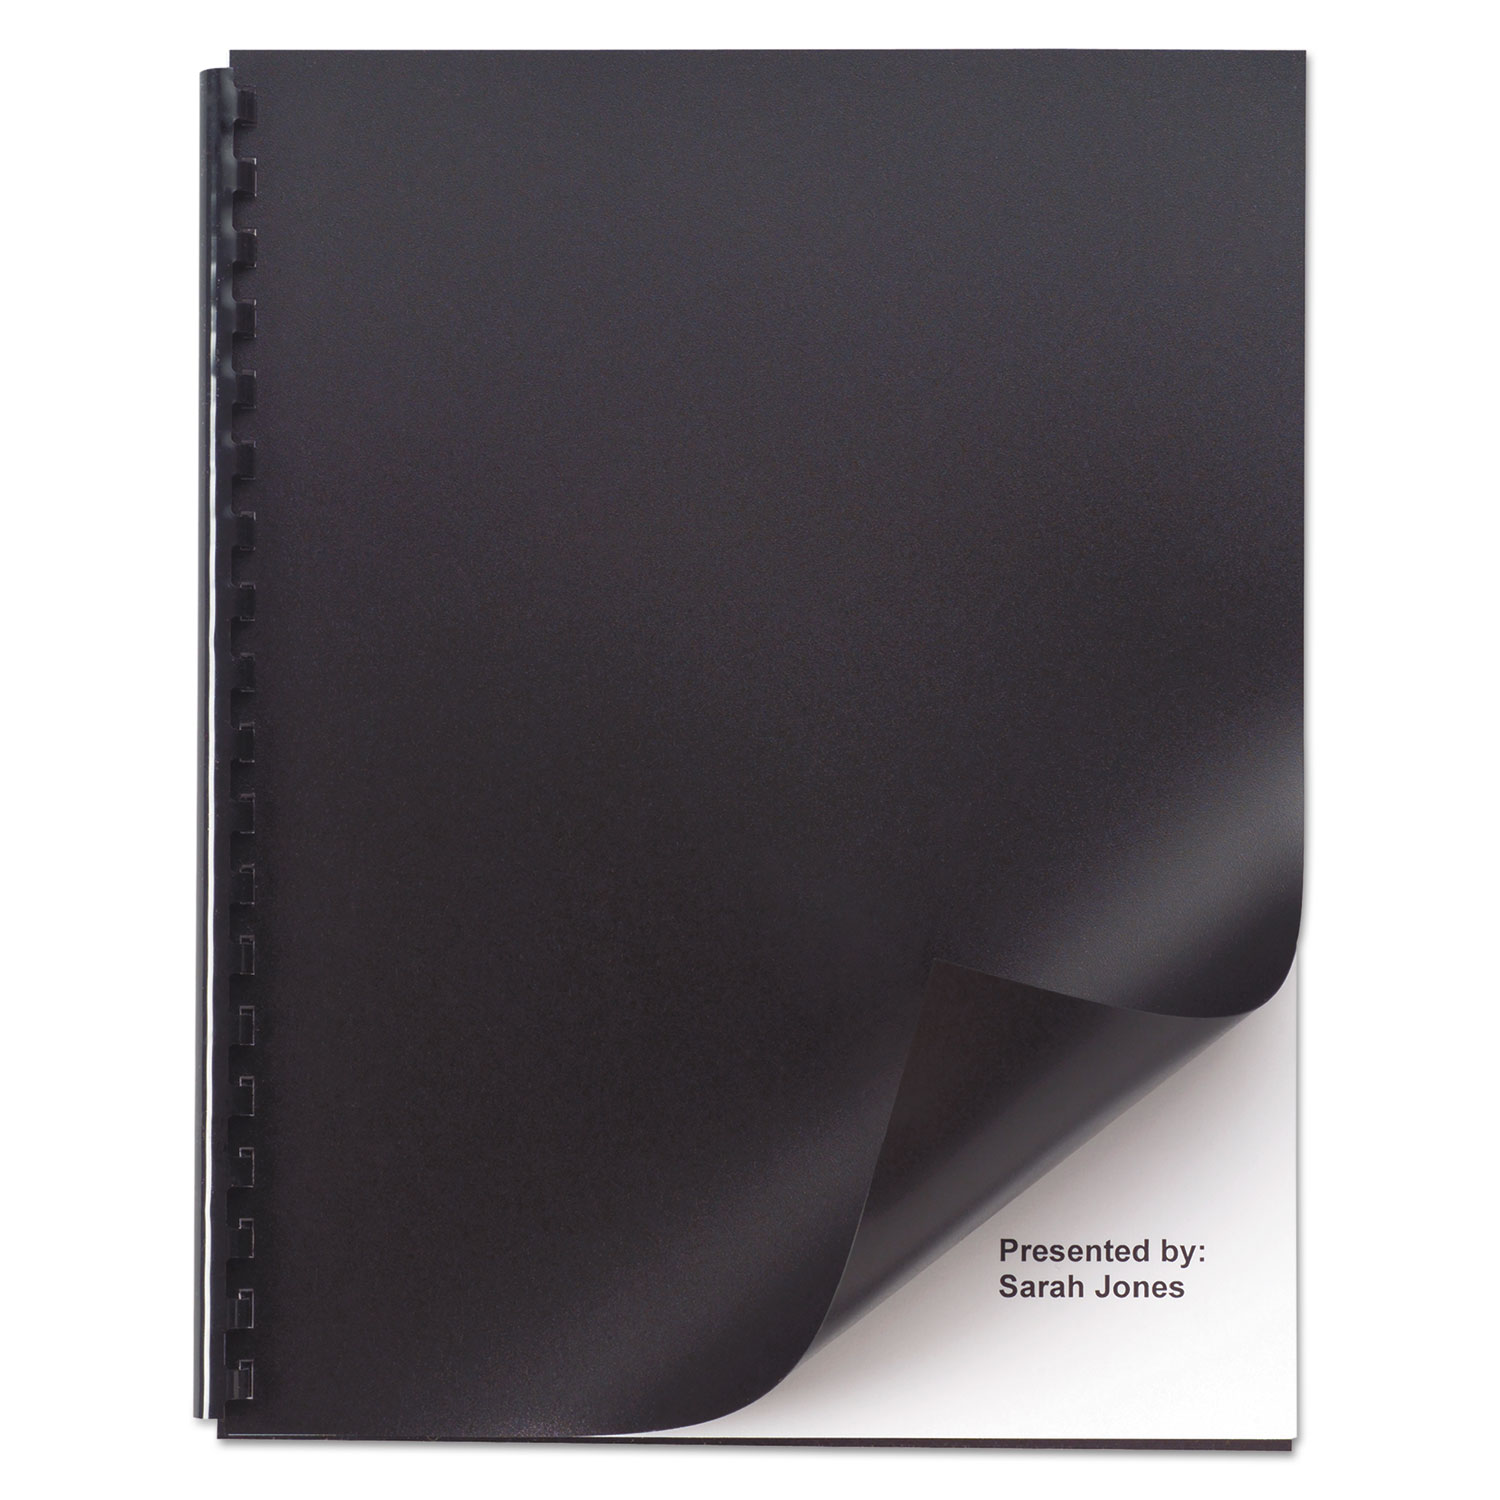 Opaque Plastic Presentation Binding System Covers, 11 x 8 1/2, Black, 50/Pack